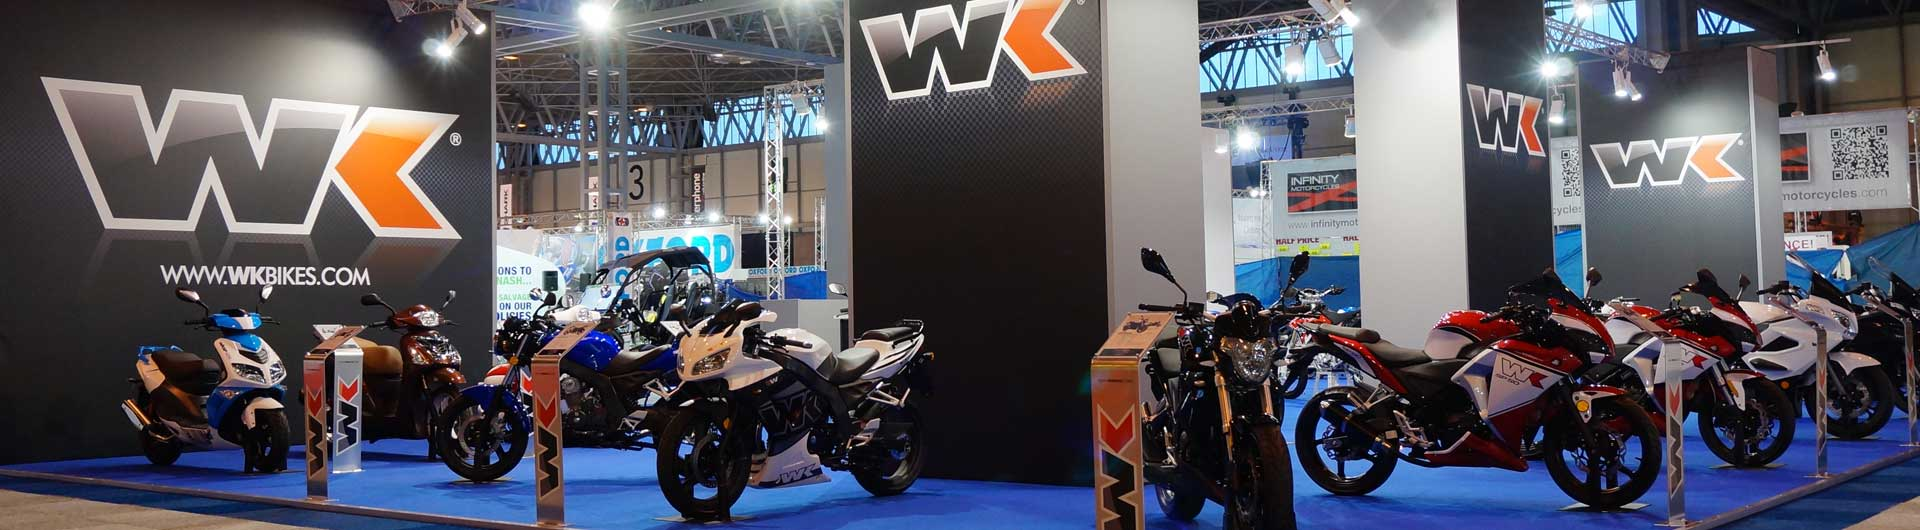 WK Bikes Exhibition Stand  Image